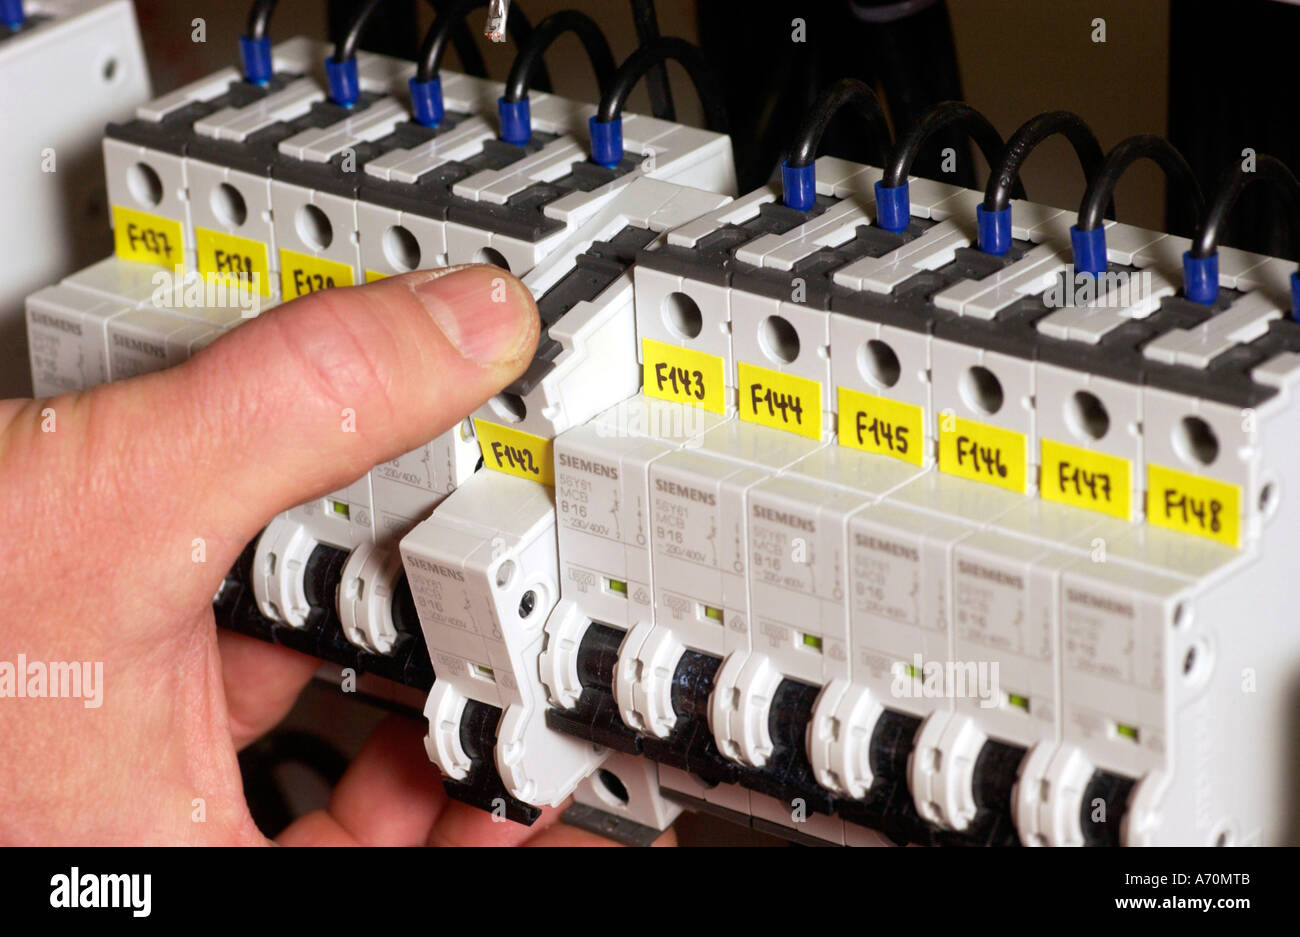 Siemens Safety Stock Photos Images Alamy Fuse Box Building Of Switchgears In A School Installations The Current Distributor